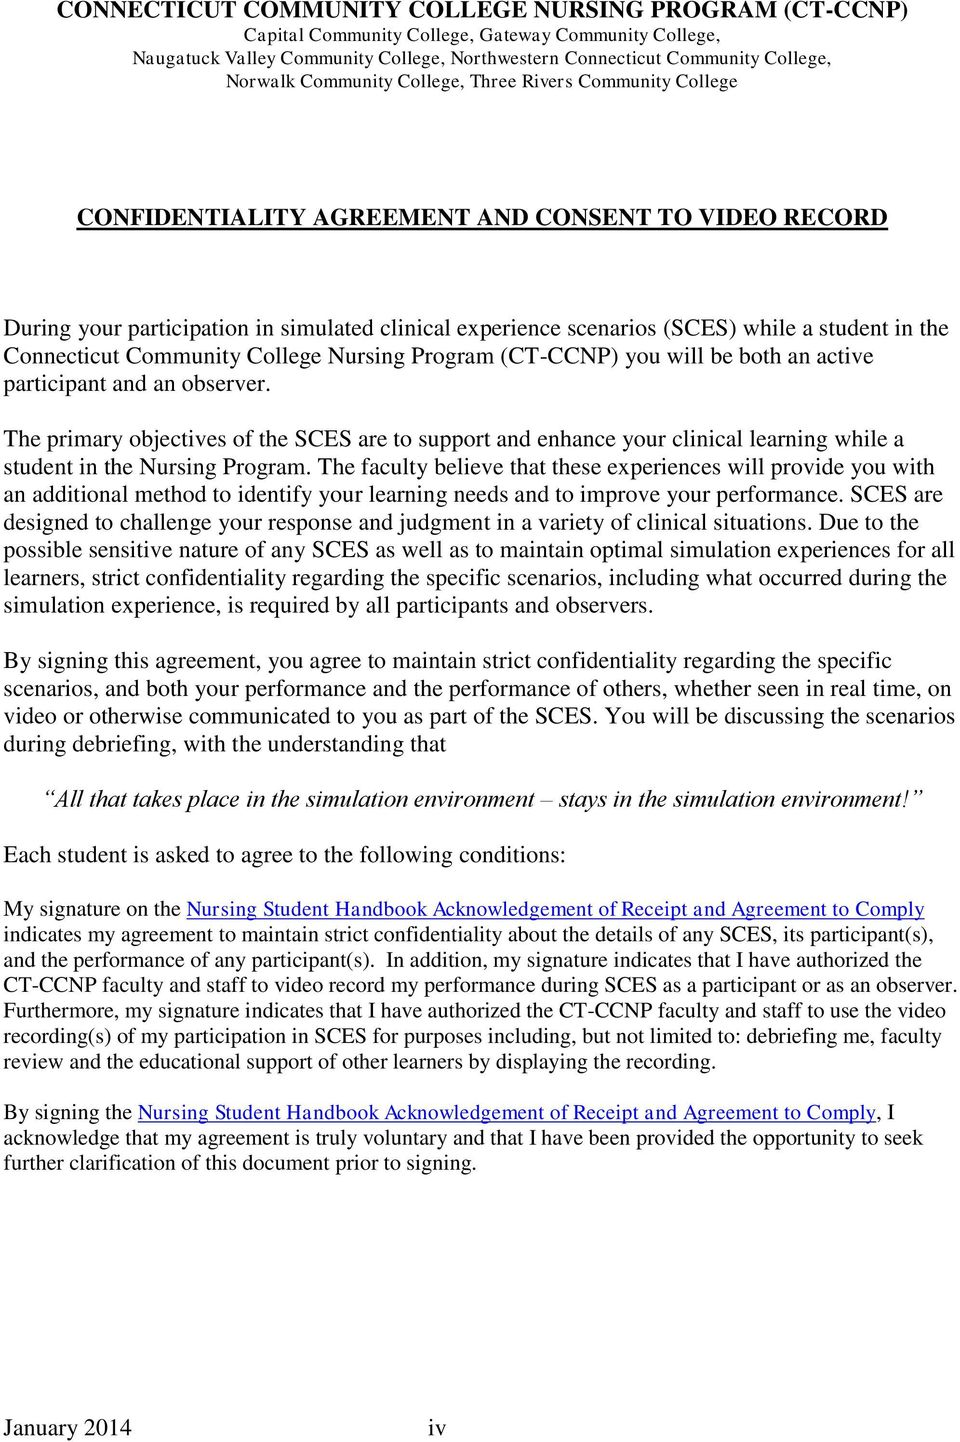 the Connecticut Community College Nursing Program (CT-CCNP) you will be both an active participant and an observer.